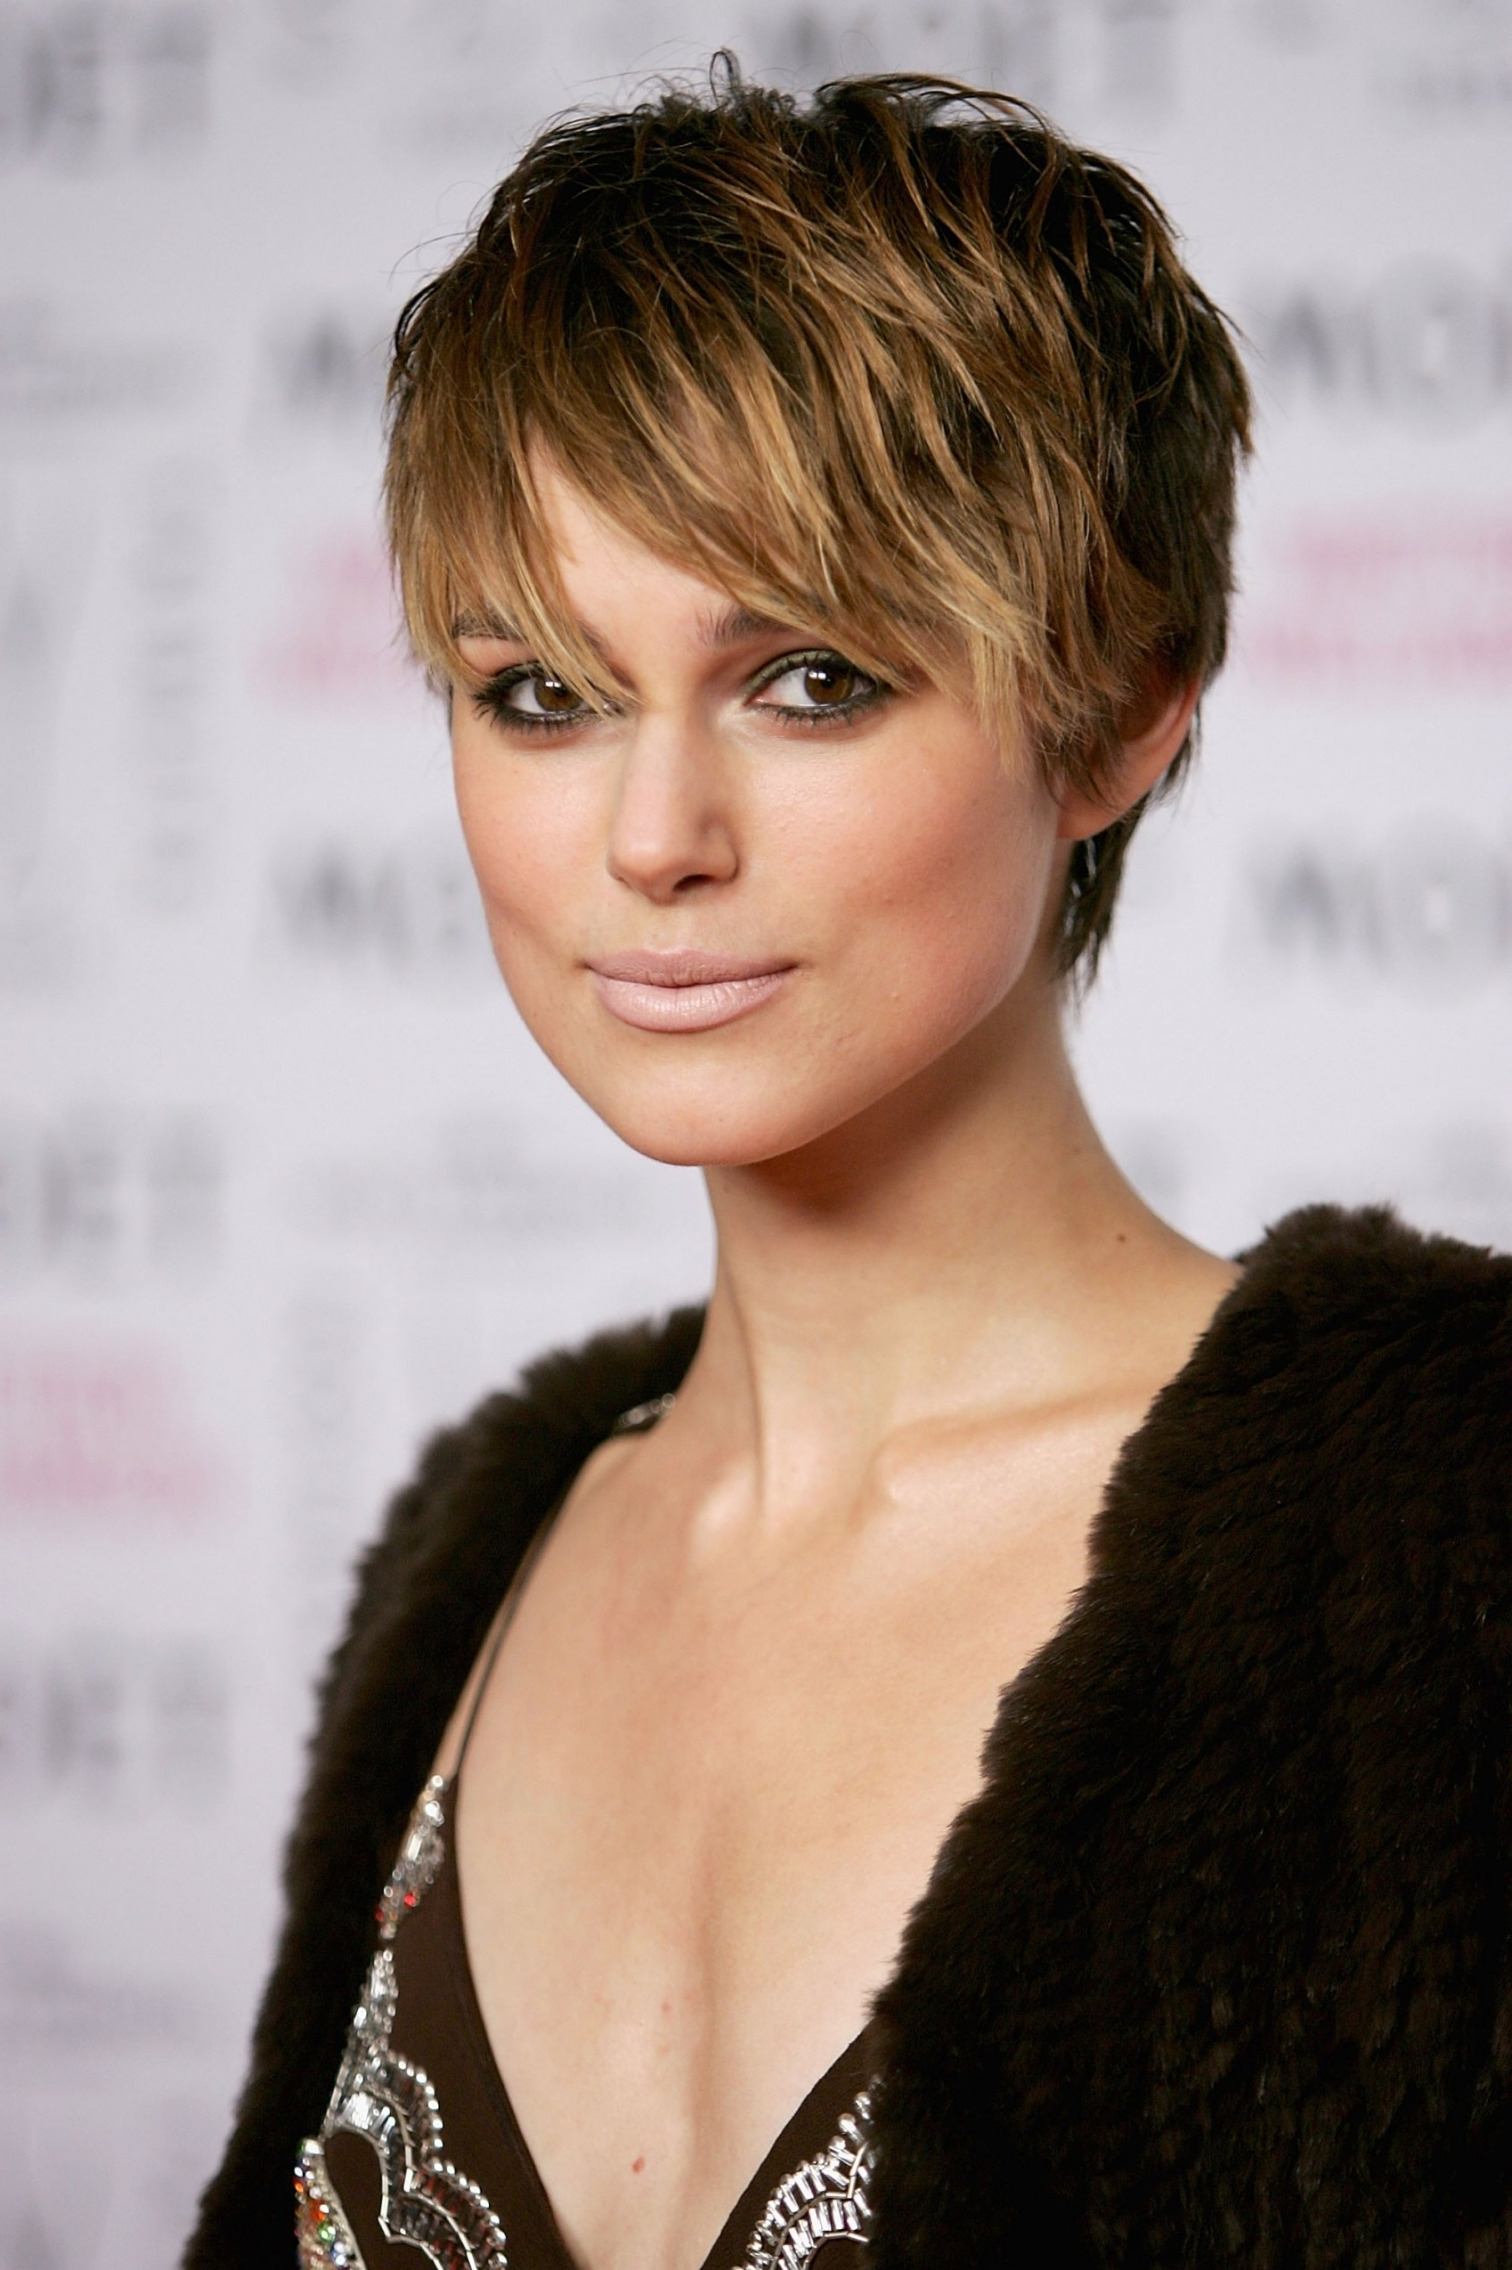 Short Hairstyles Square Face Fine Hair 27 Short Hairstyles For With Regard To Most Up To Date Cornrows Hairstyles For Square Faces (View 15 of 15)